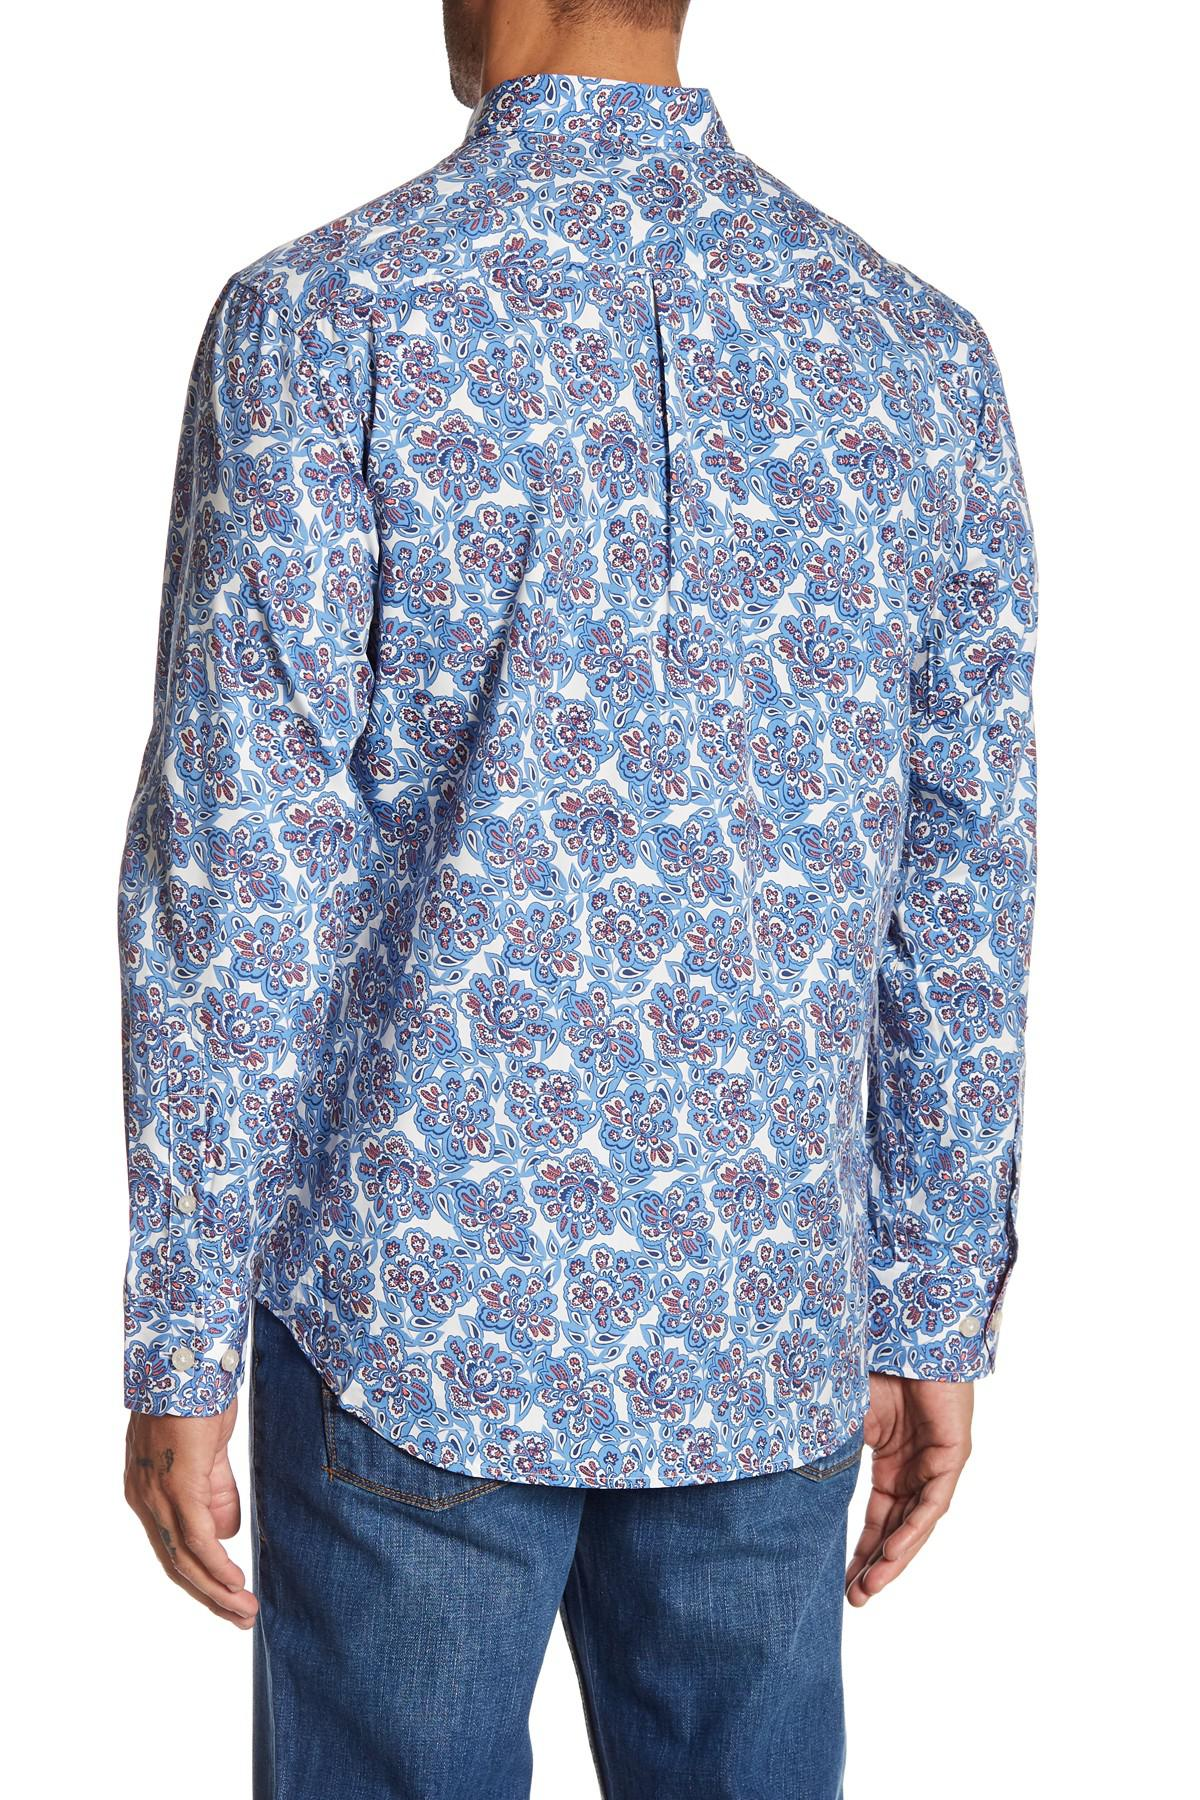 Lyst tommy bahama graphic printed long sleeve shirt in for Tommy bahama long sleeve dress shirts